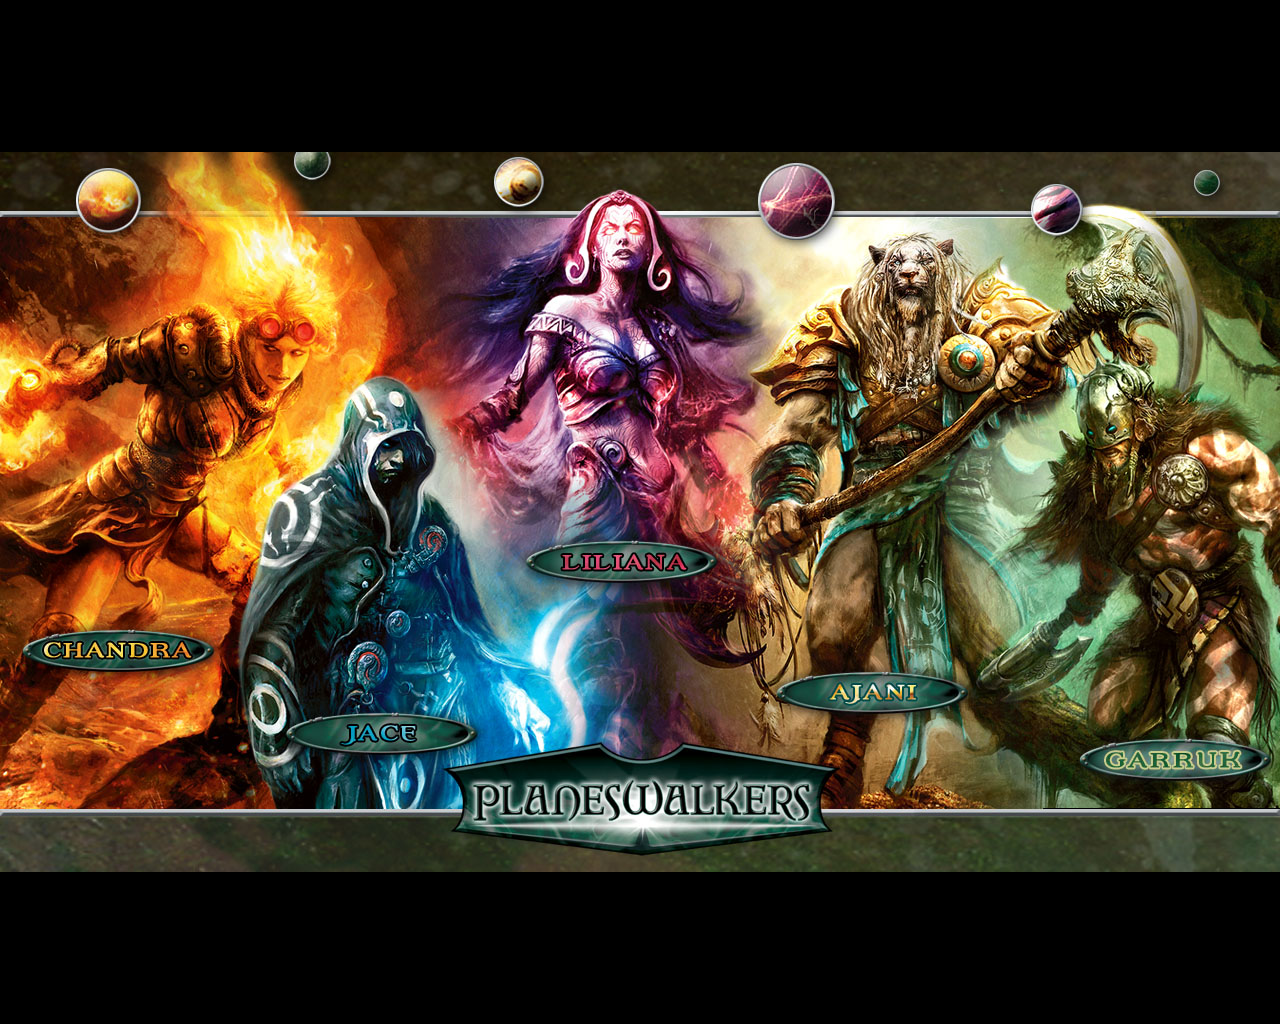 Wallpaper planeswalkers 1280x1024